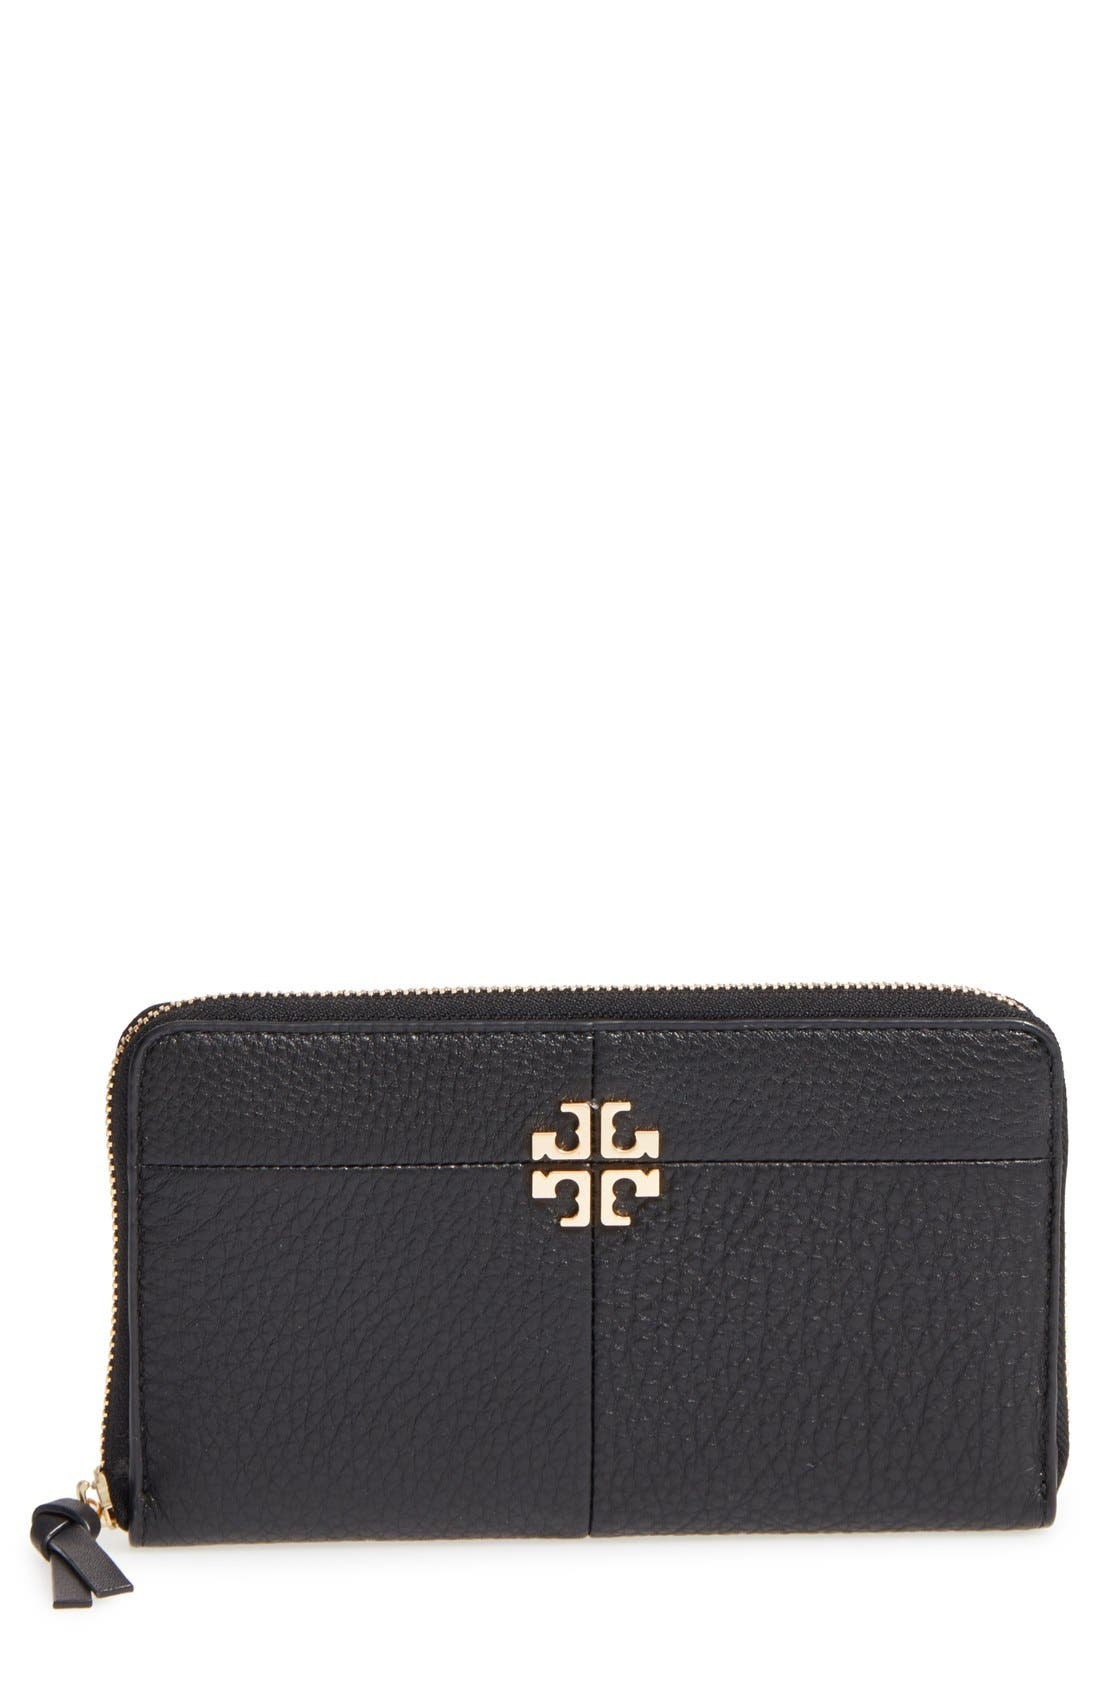 Alternate Image 1 Selected - Tory Burch Ivy Leather Continental Wallet